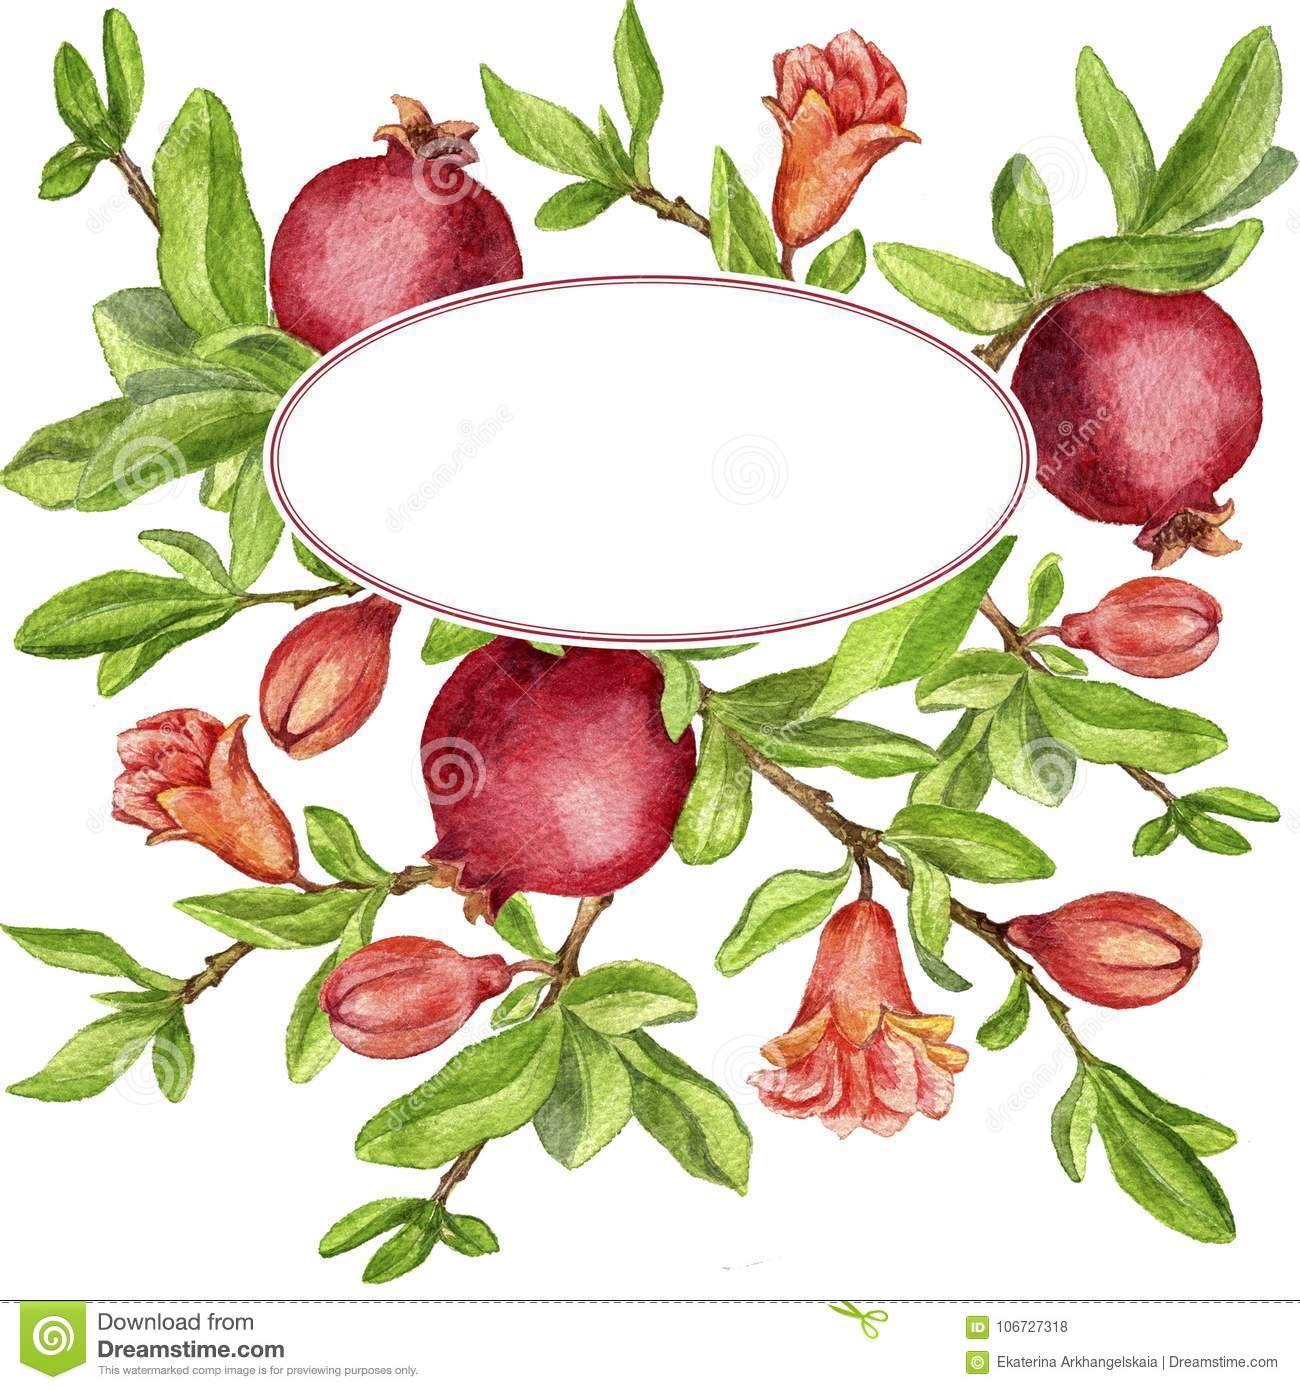 Template With Fruit Tree Branches Leaves Flower And Pomegranates Stock Illustration Illustration Of Growth Background 106727318